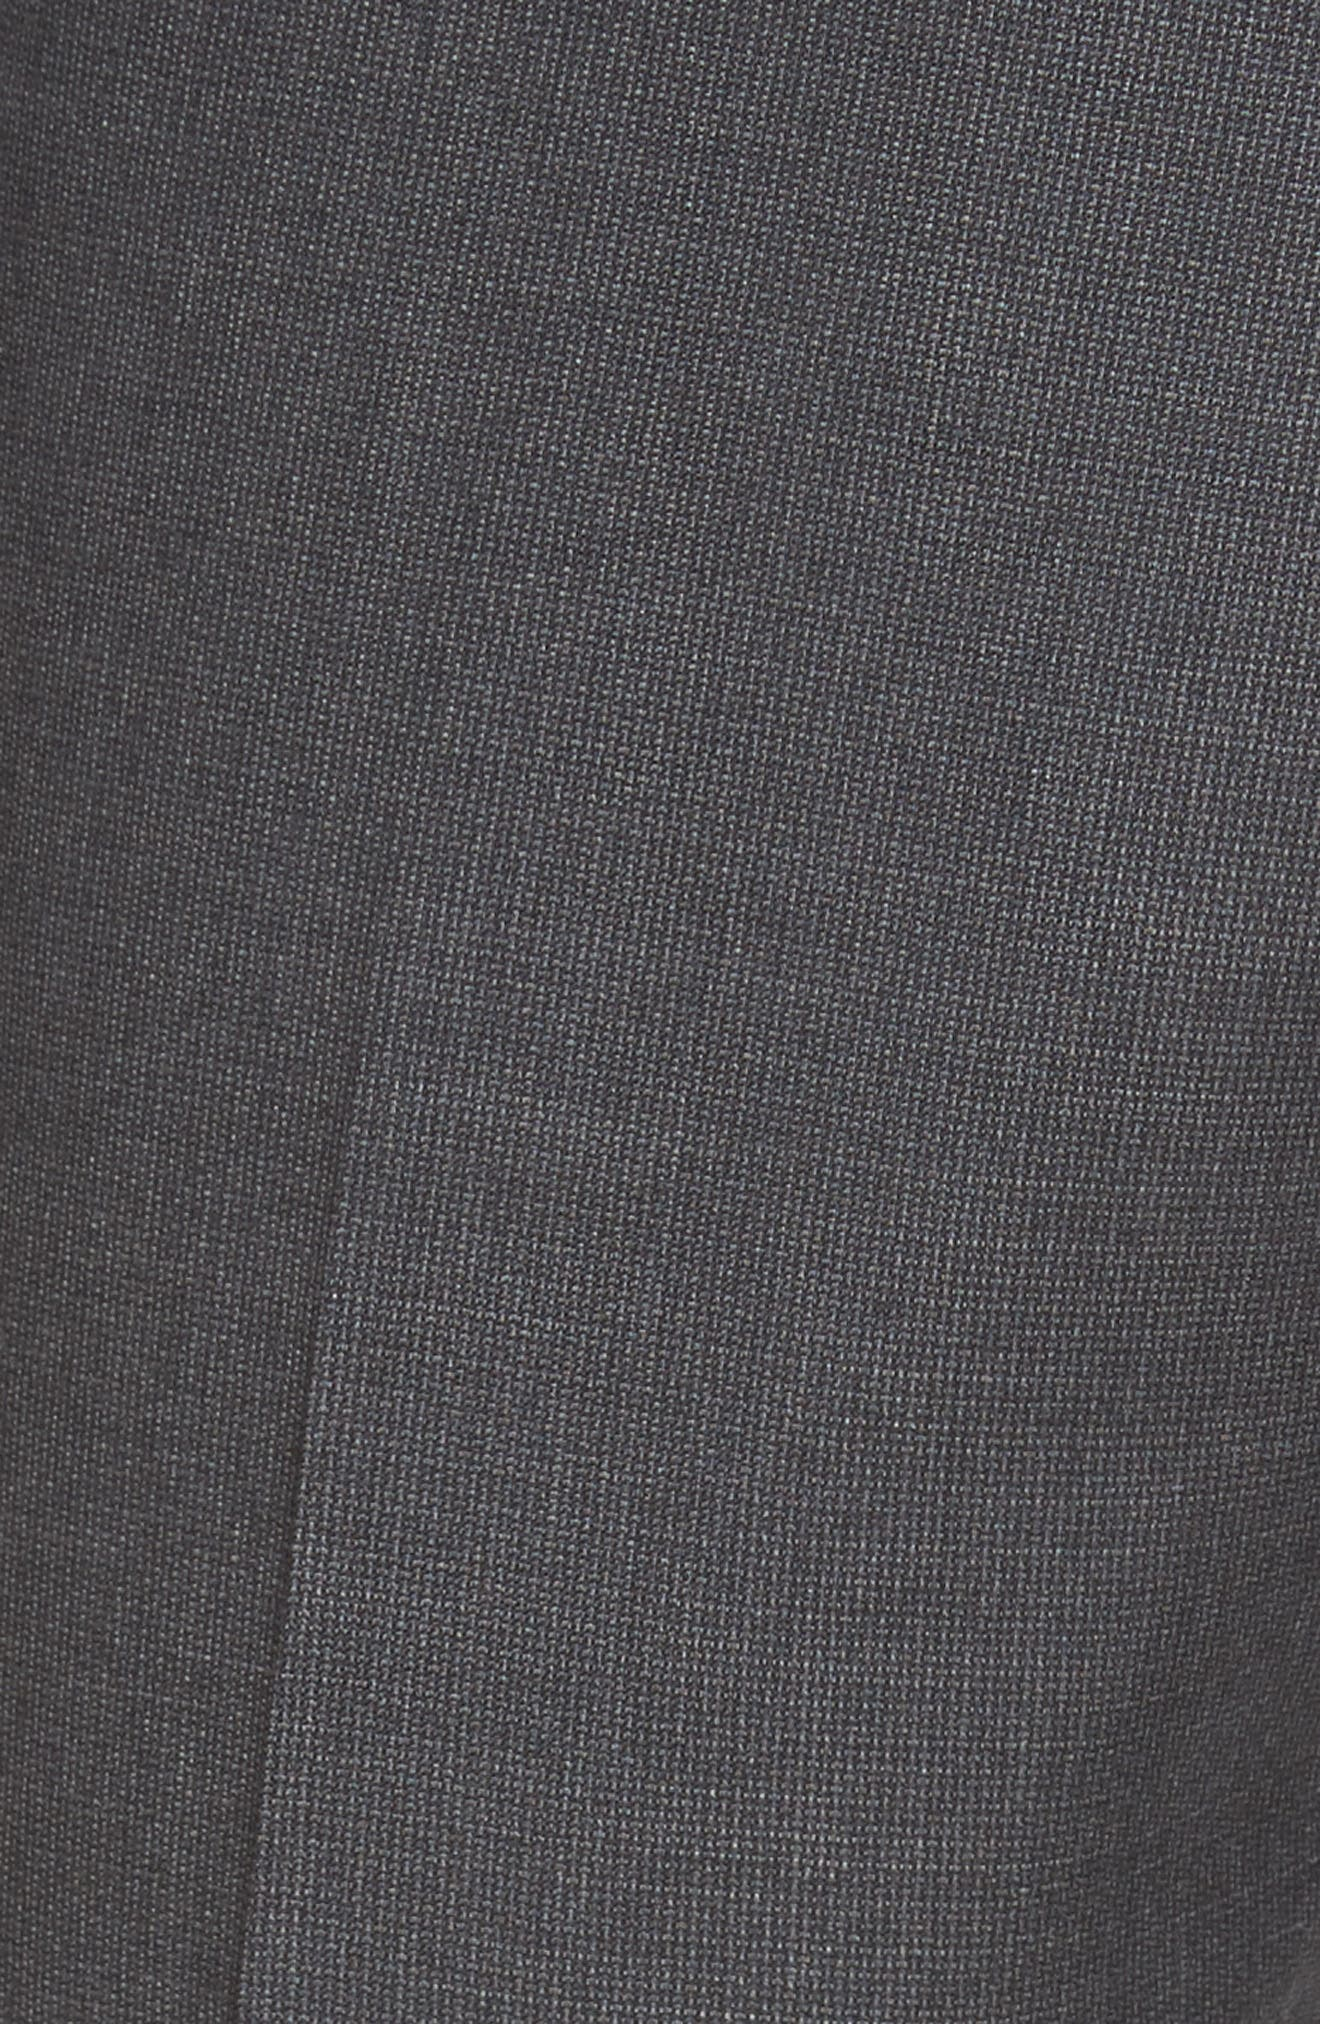 Flat Front Solid Wool Suit Trousers,                             Alternate thumbnail 2, color,                             099